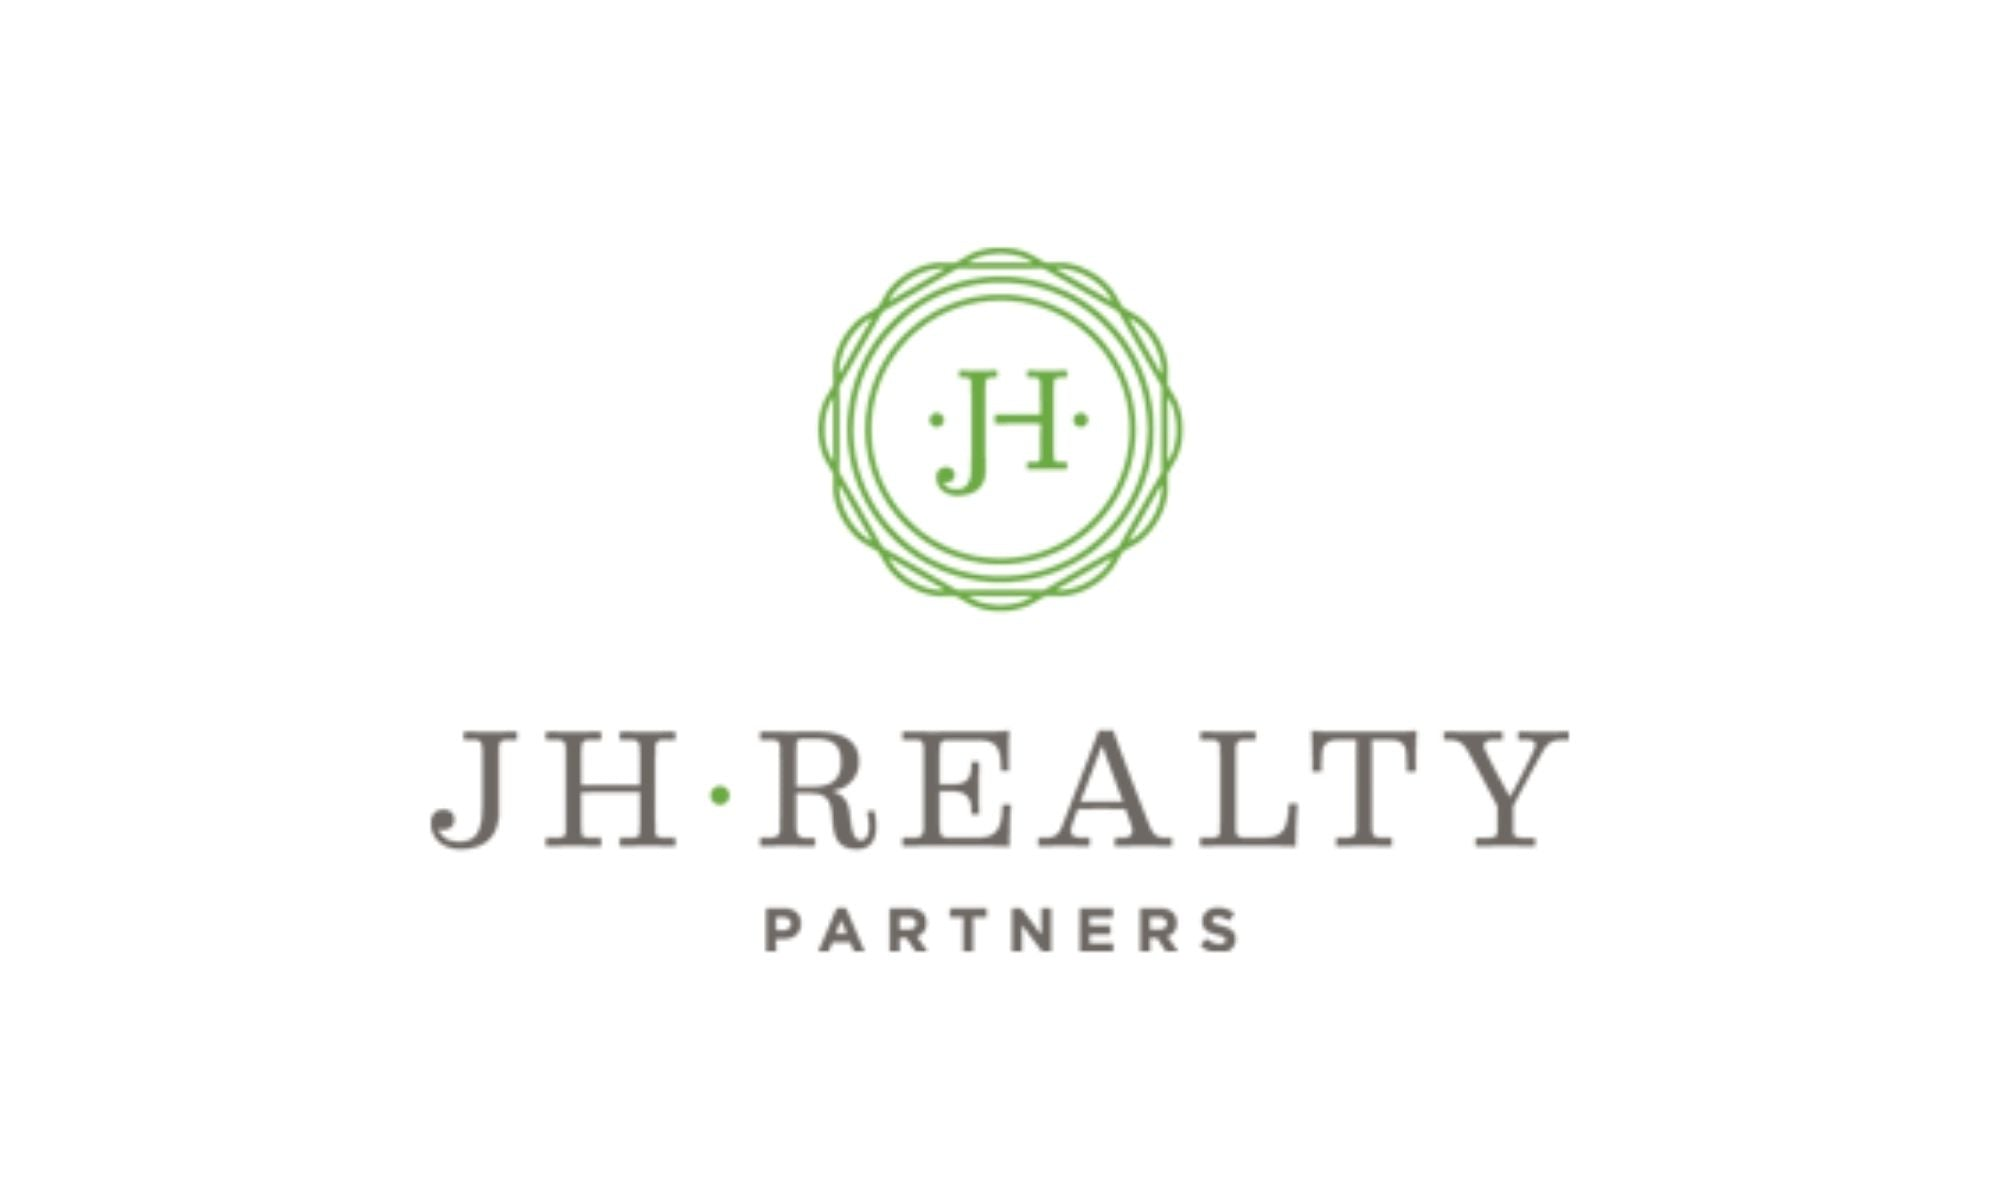 What a Year To Remember-JH Realty-Delight in Designs-Stylizing Blog